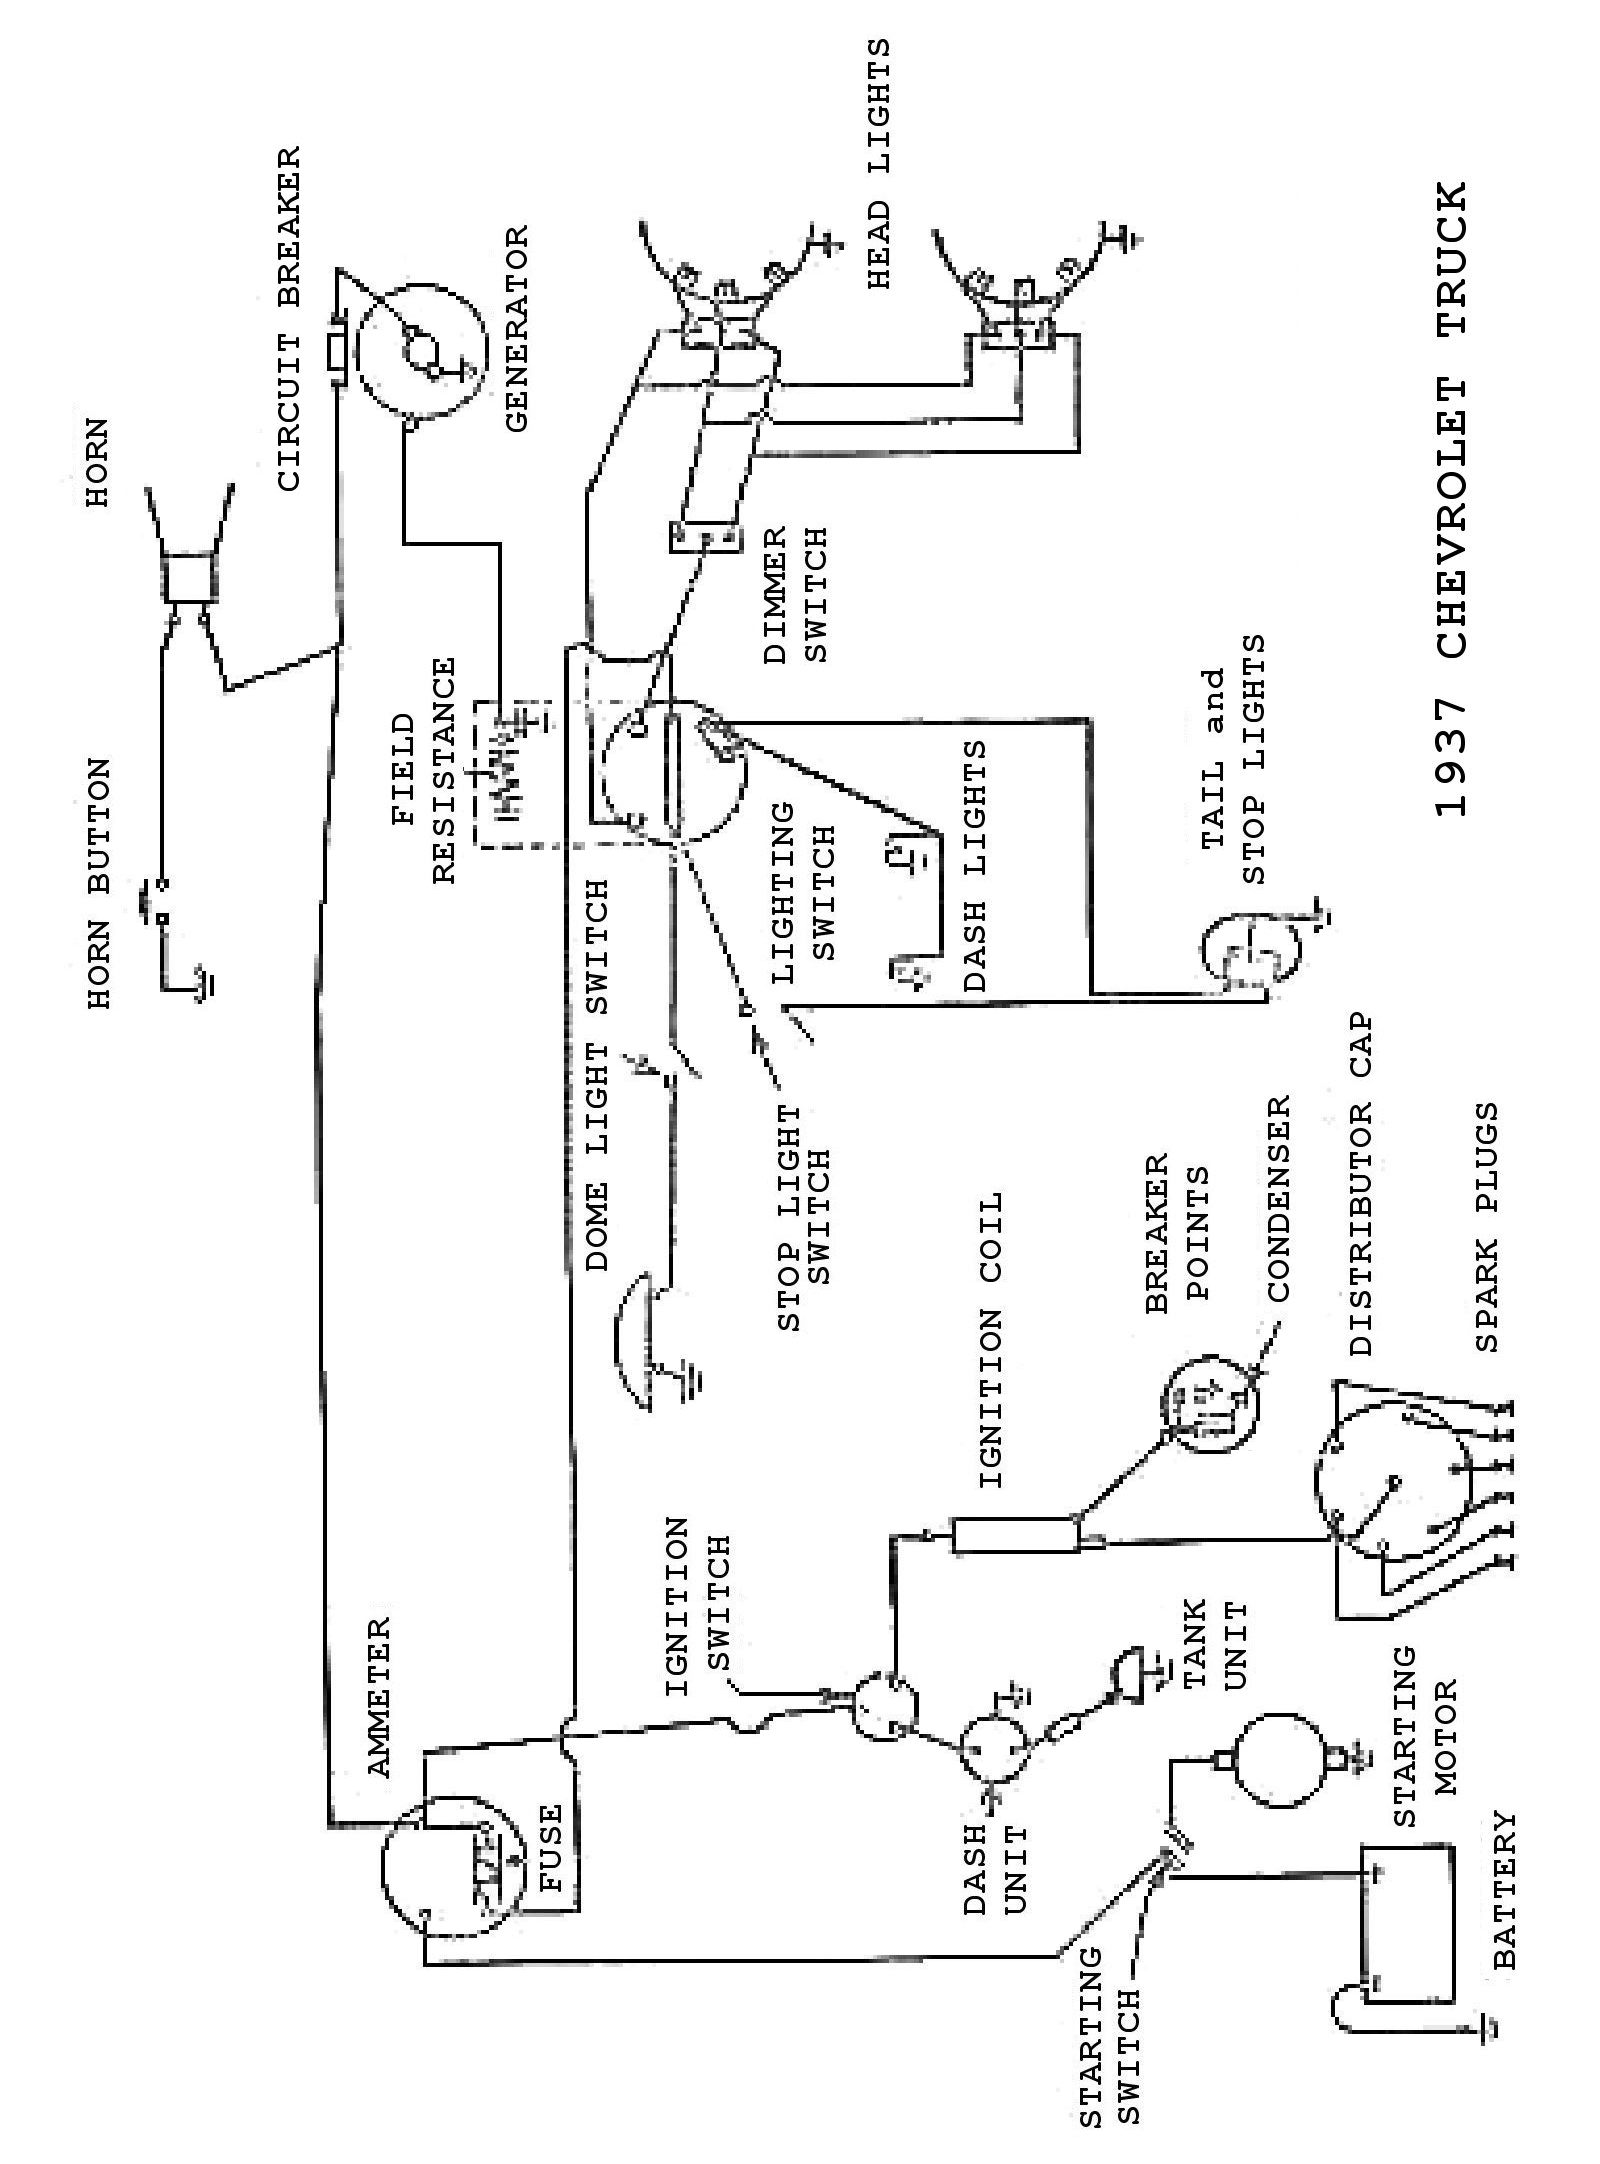 hight resolution of 1937 international truck wiring diagram schematic just wiring data rh ag skiphire co uk